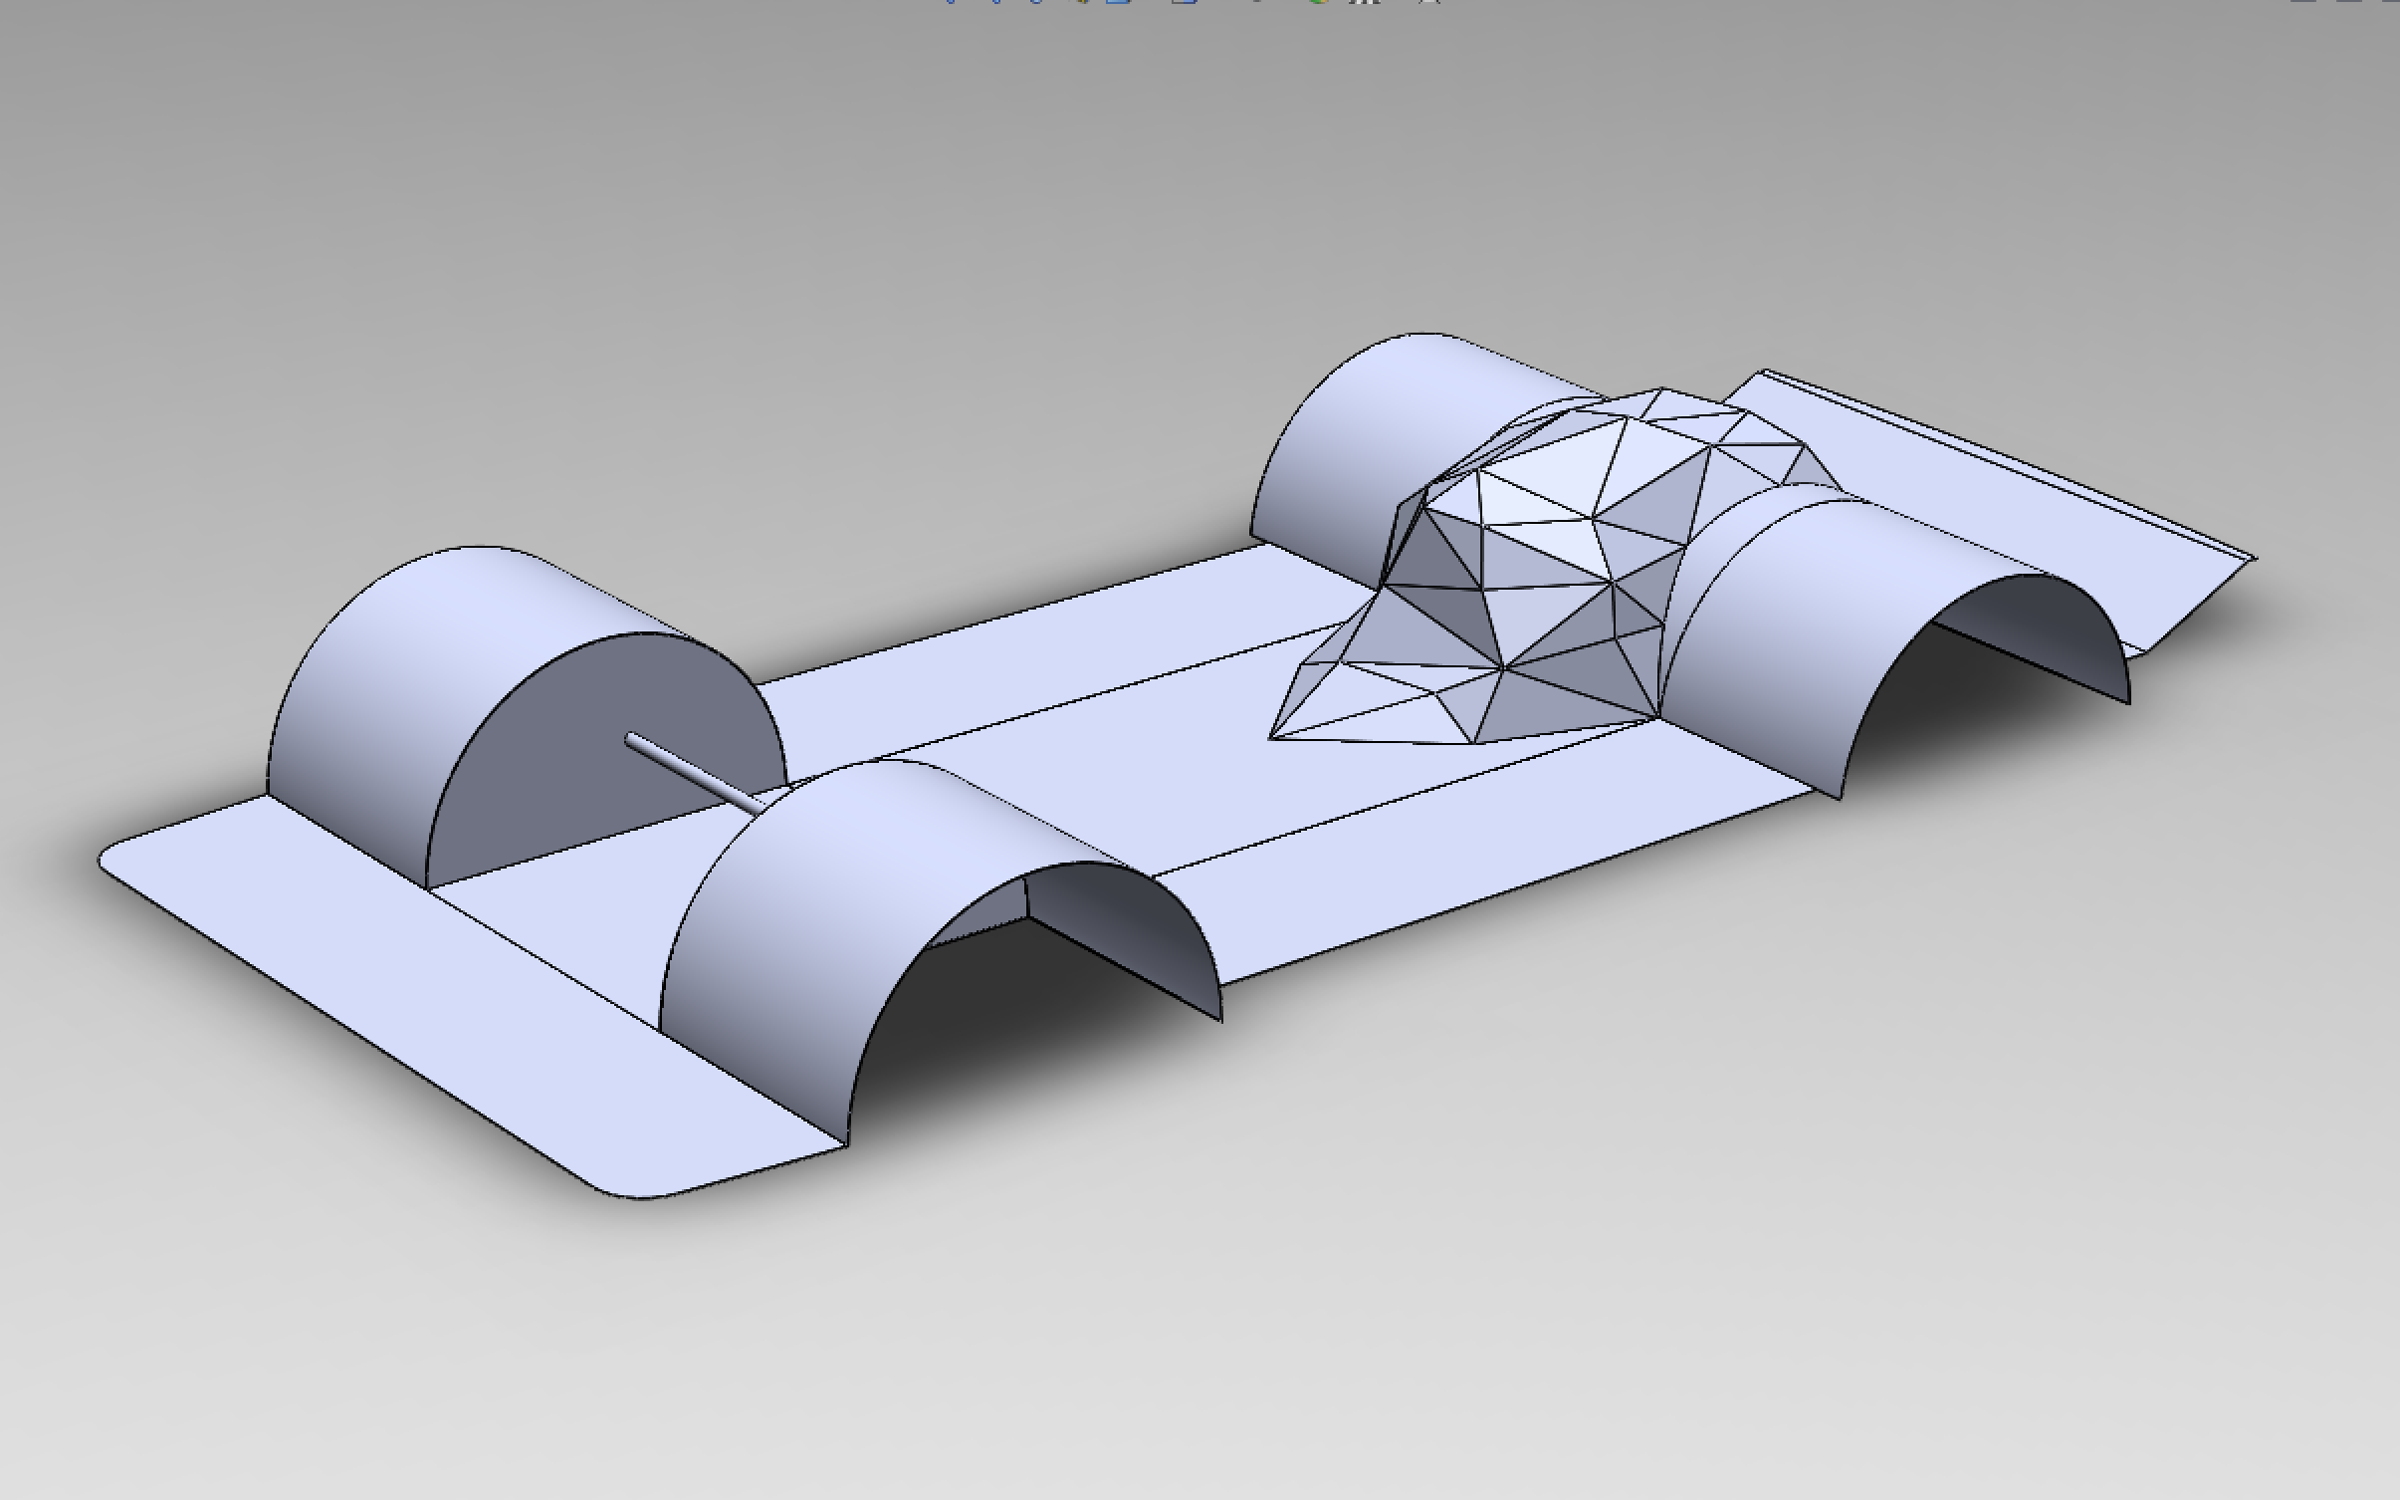 Picture of Mock-up, Scan, Design, and 3D Model